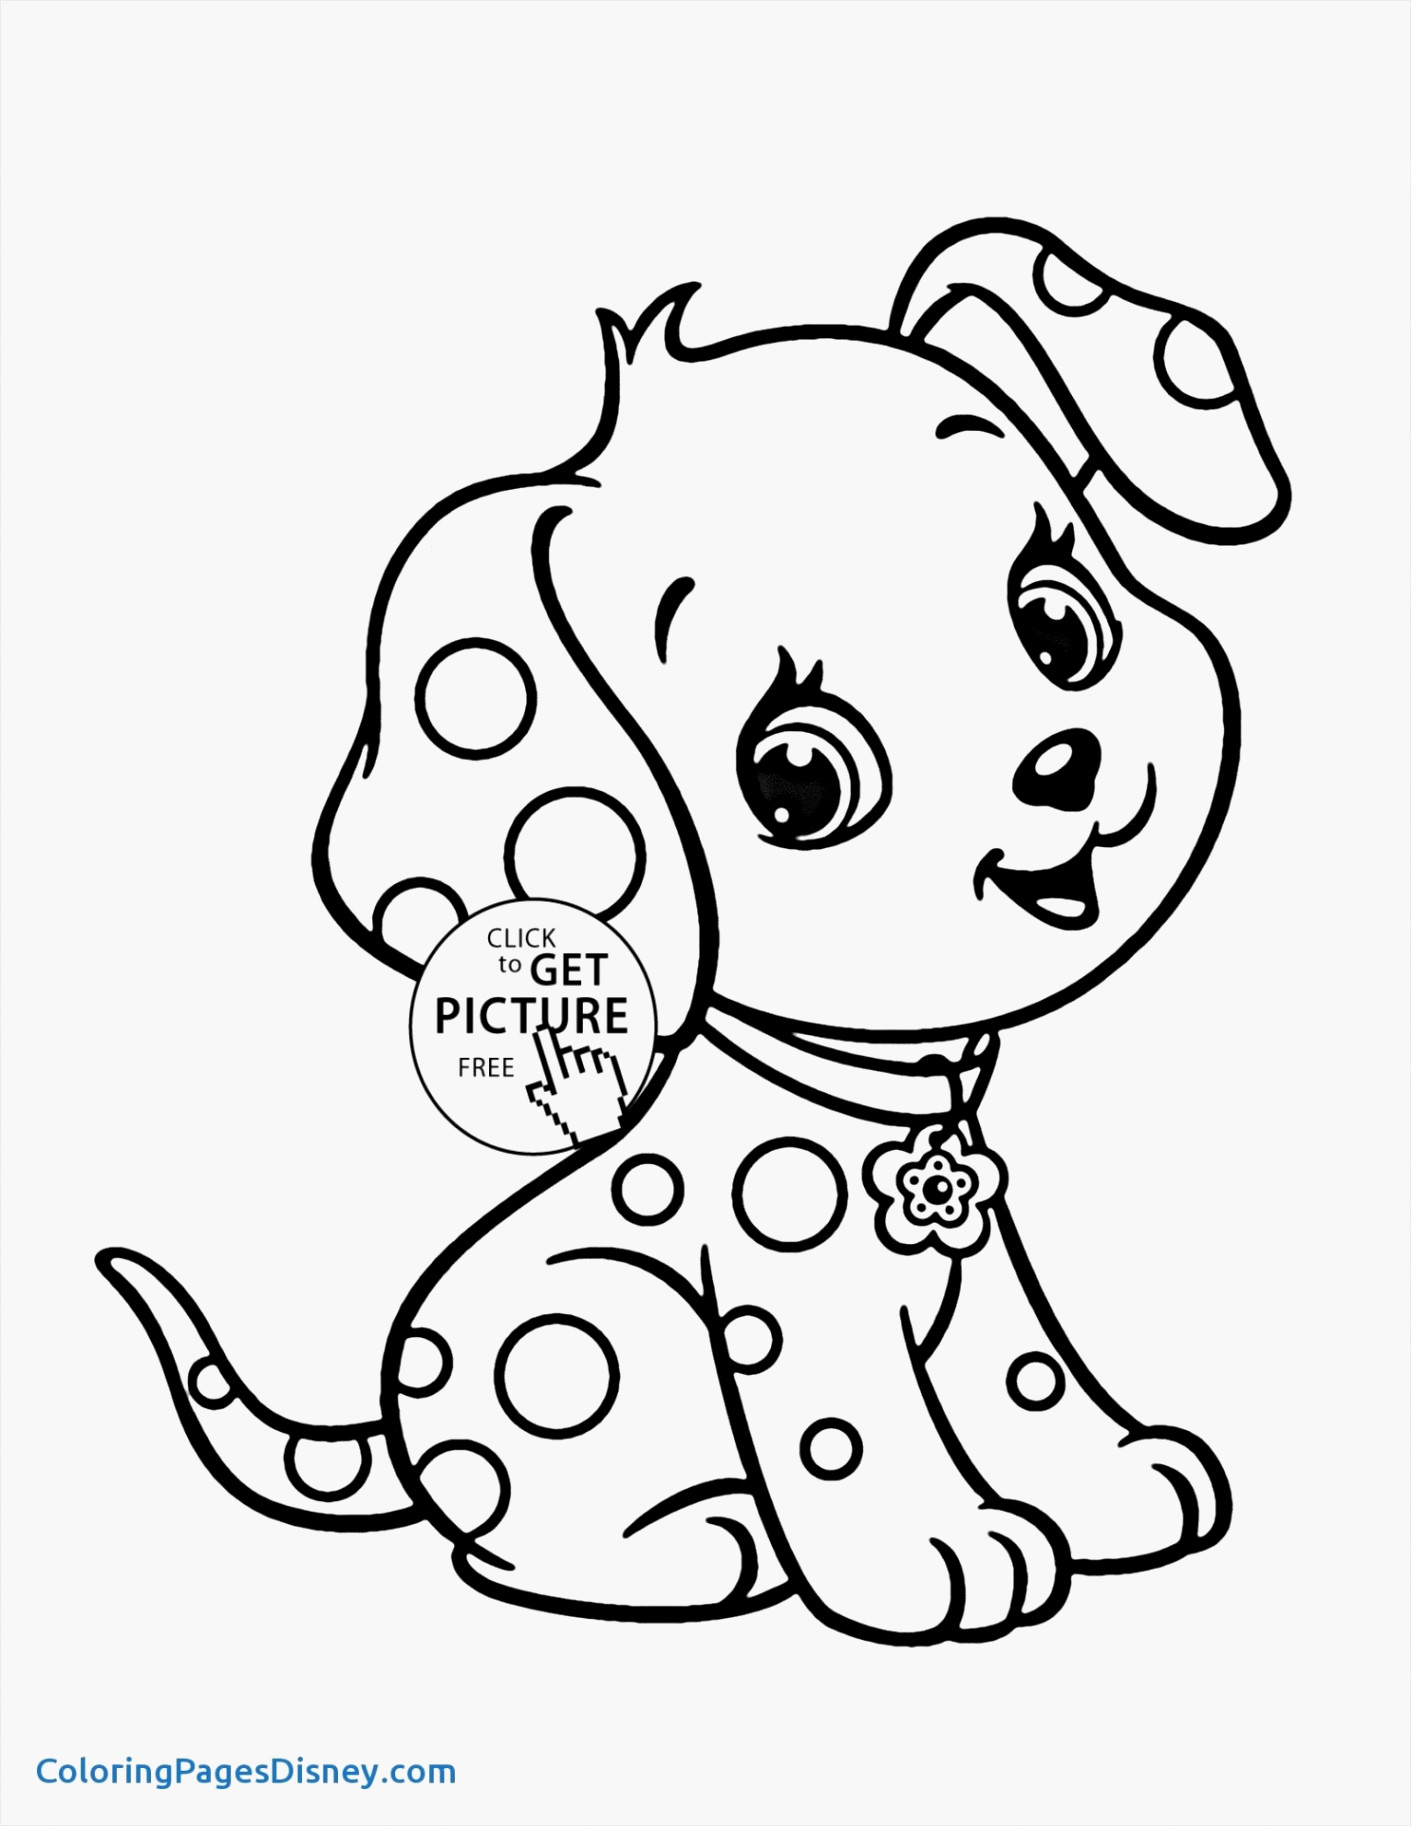 Social Skills Coloring Pages  Printable 10h - To print for your project